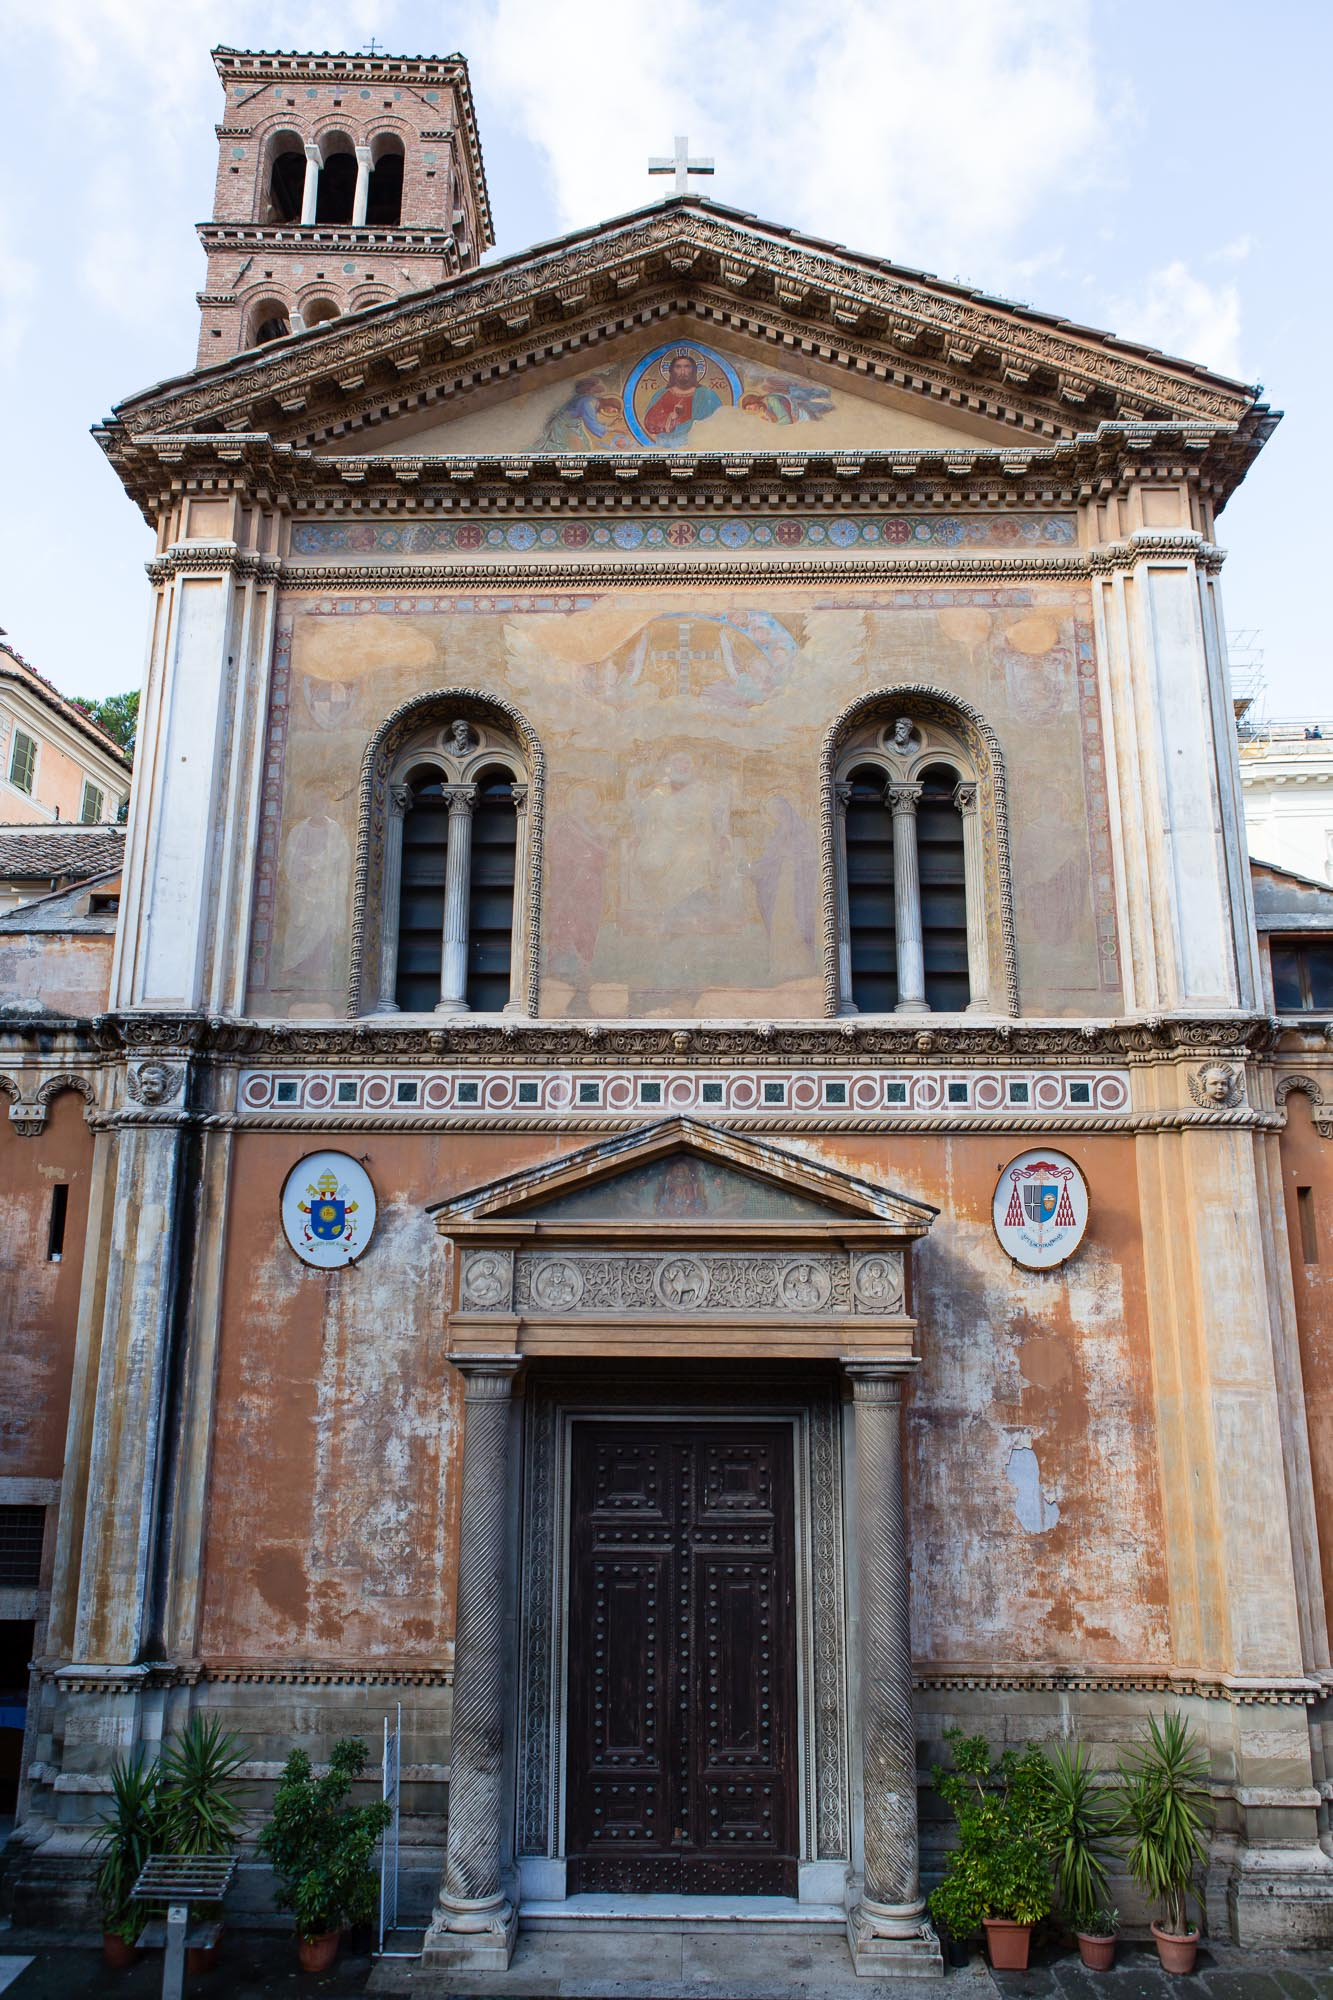 Basilica of Santa Pudenziana, taken by Ben Lee, a derbyshire based photographer on his trip to Rome.